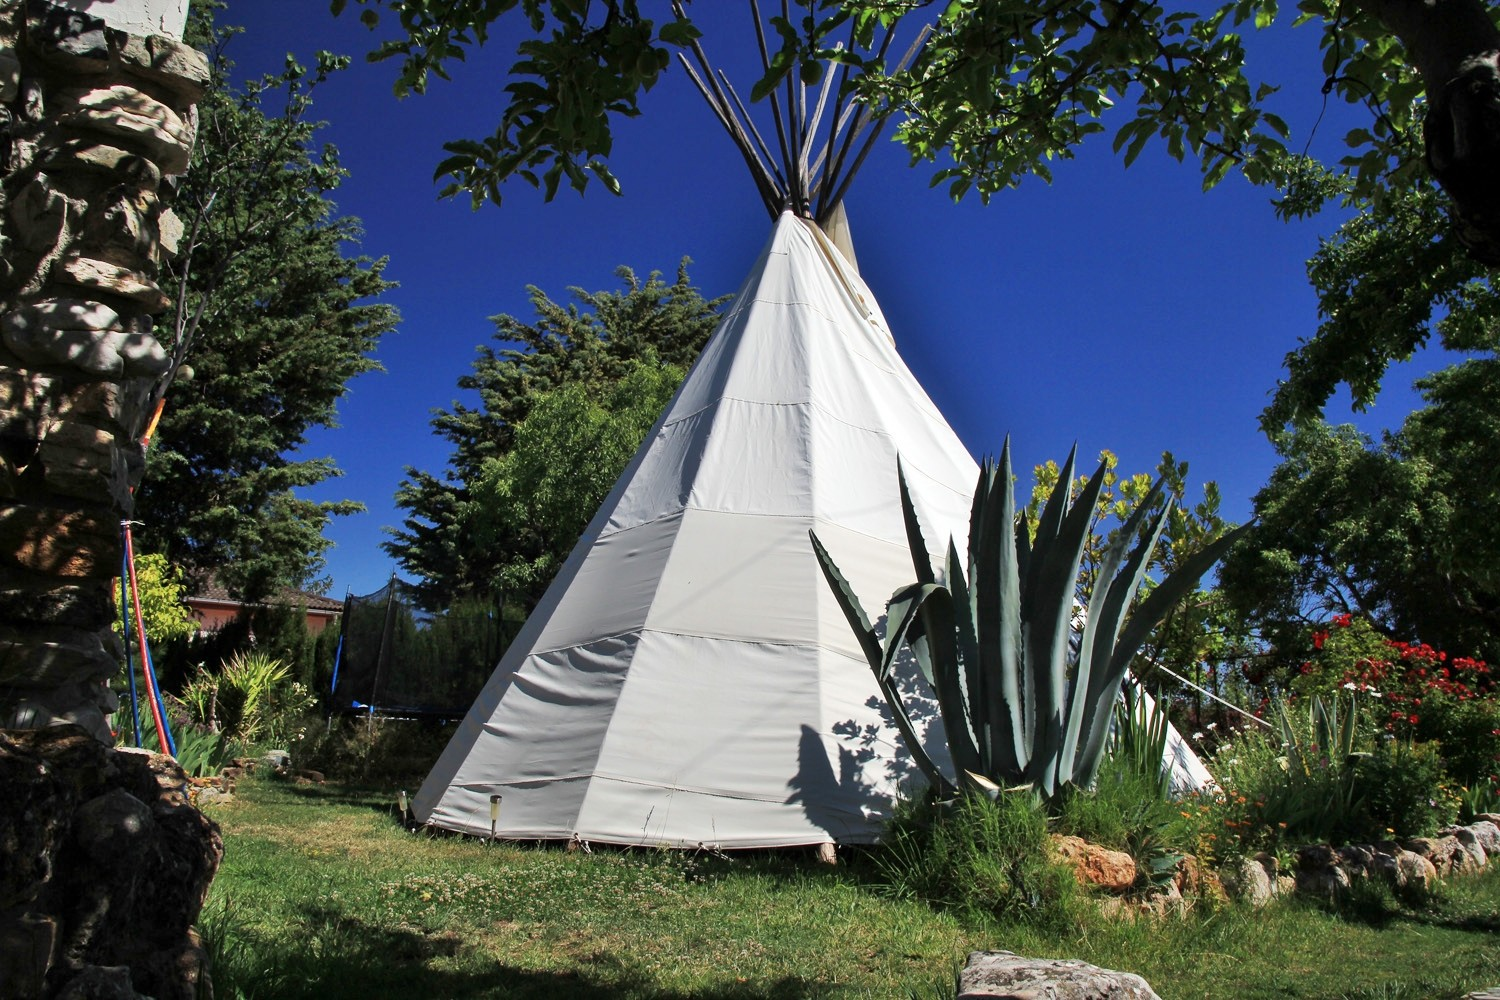 Back view of the Teepee